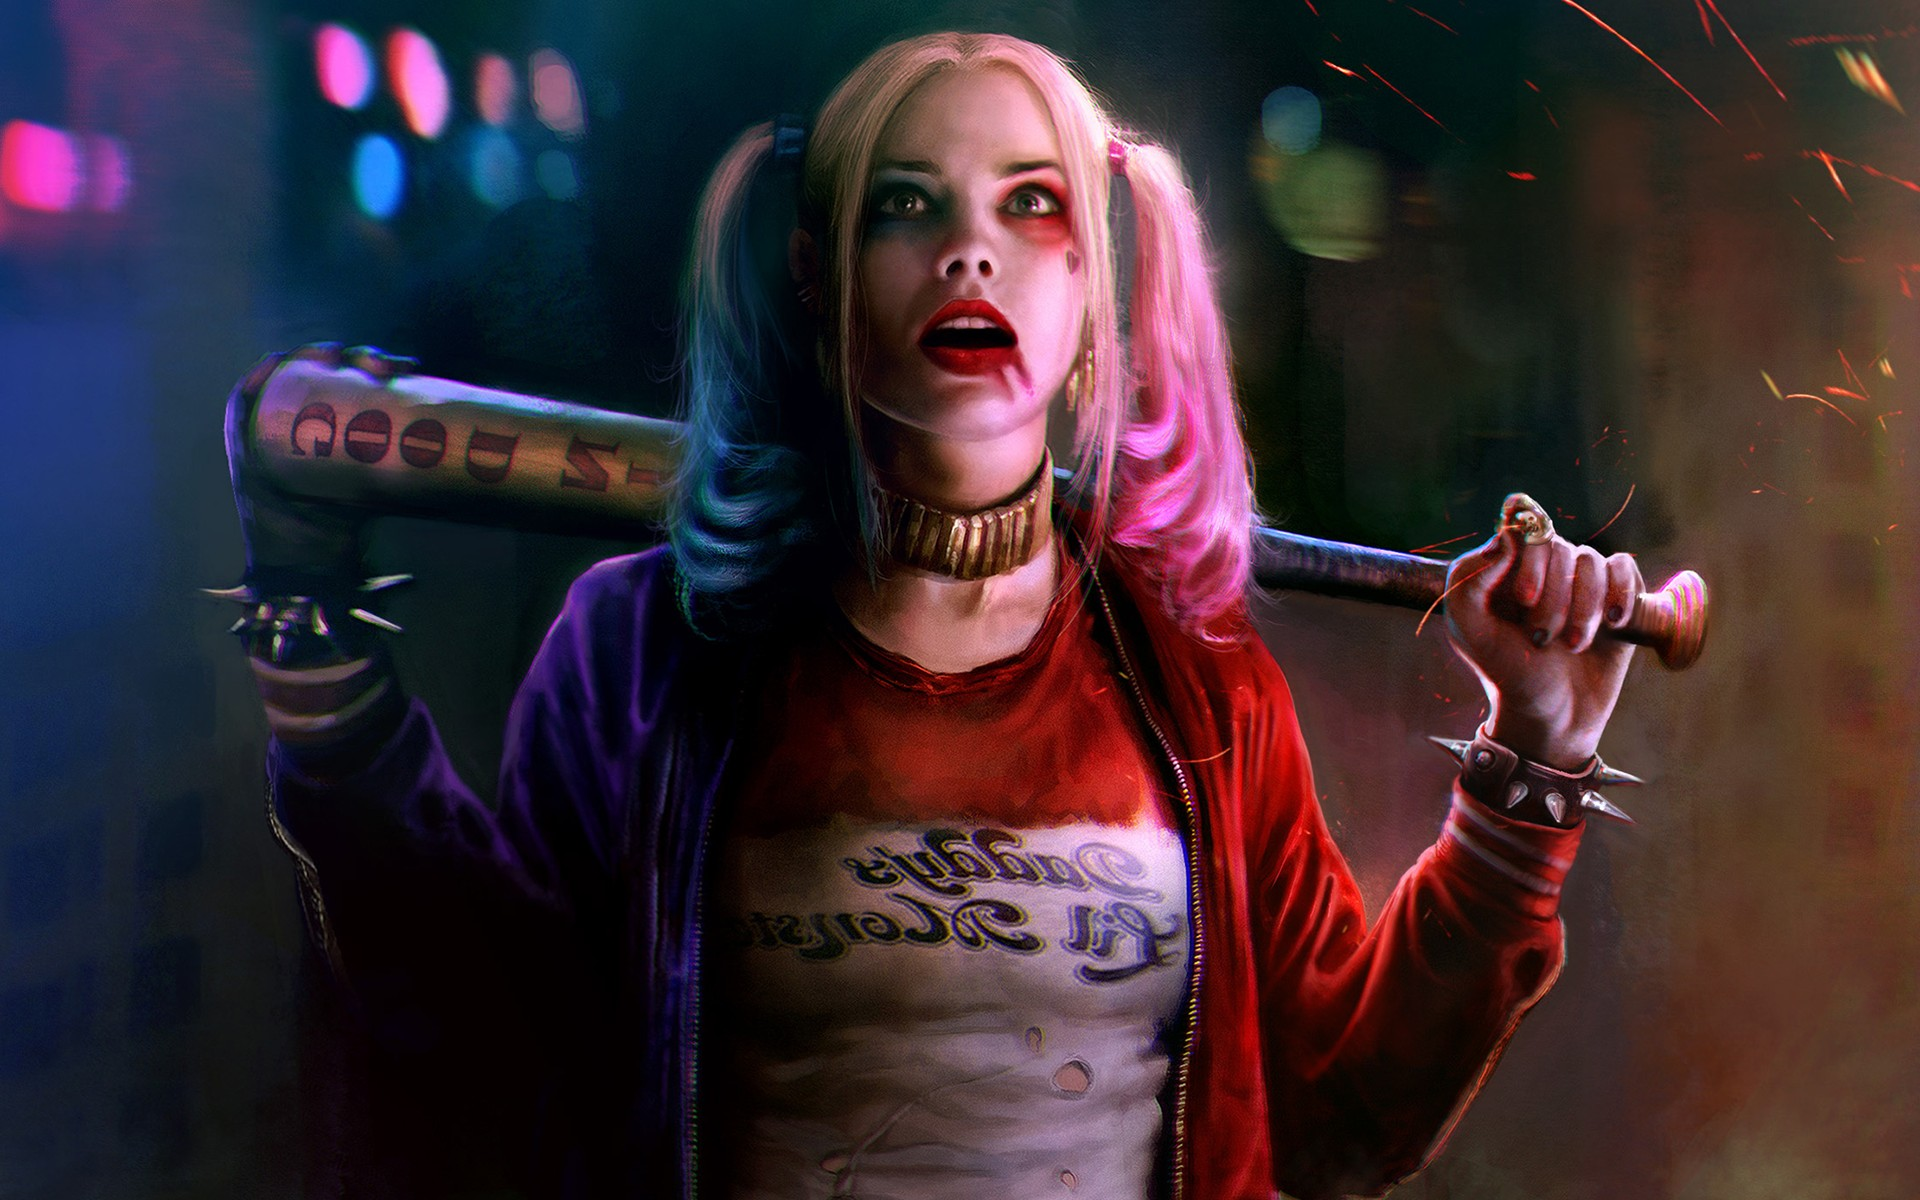 Harley quinn wallpaper download free cool wallpapers of - Harley quinn hd wallpapers for android ...